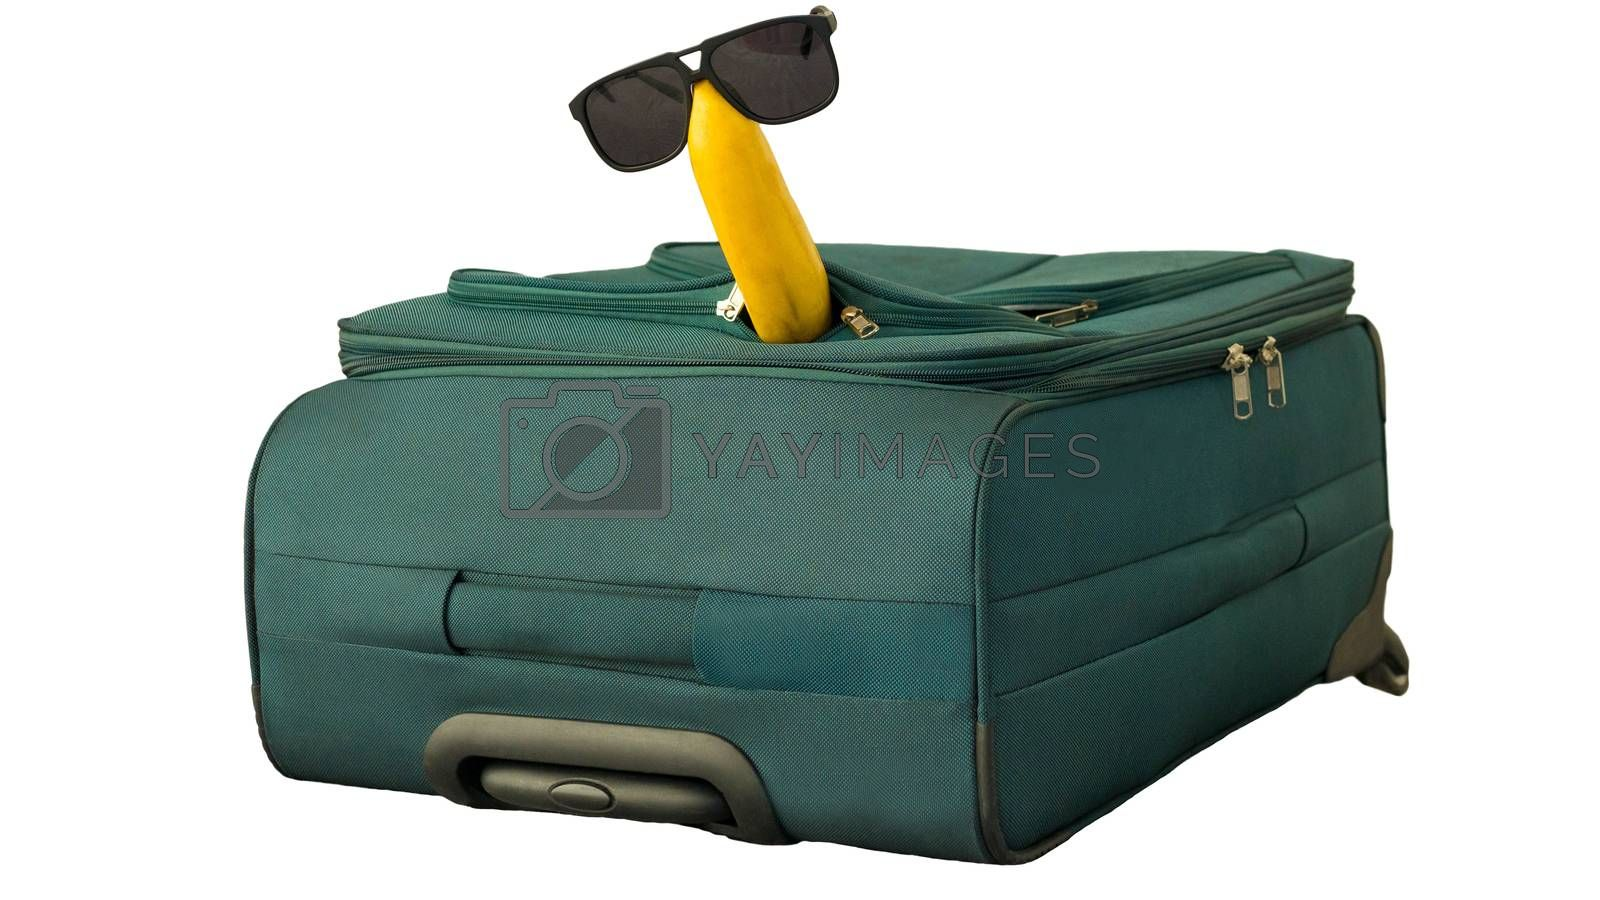 Royalty free image of Banana in sunglasses sits on a suitcase isolated on white,close-up. by Andriii_Klapkoo